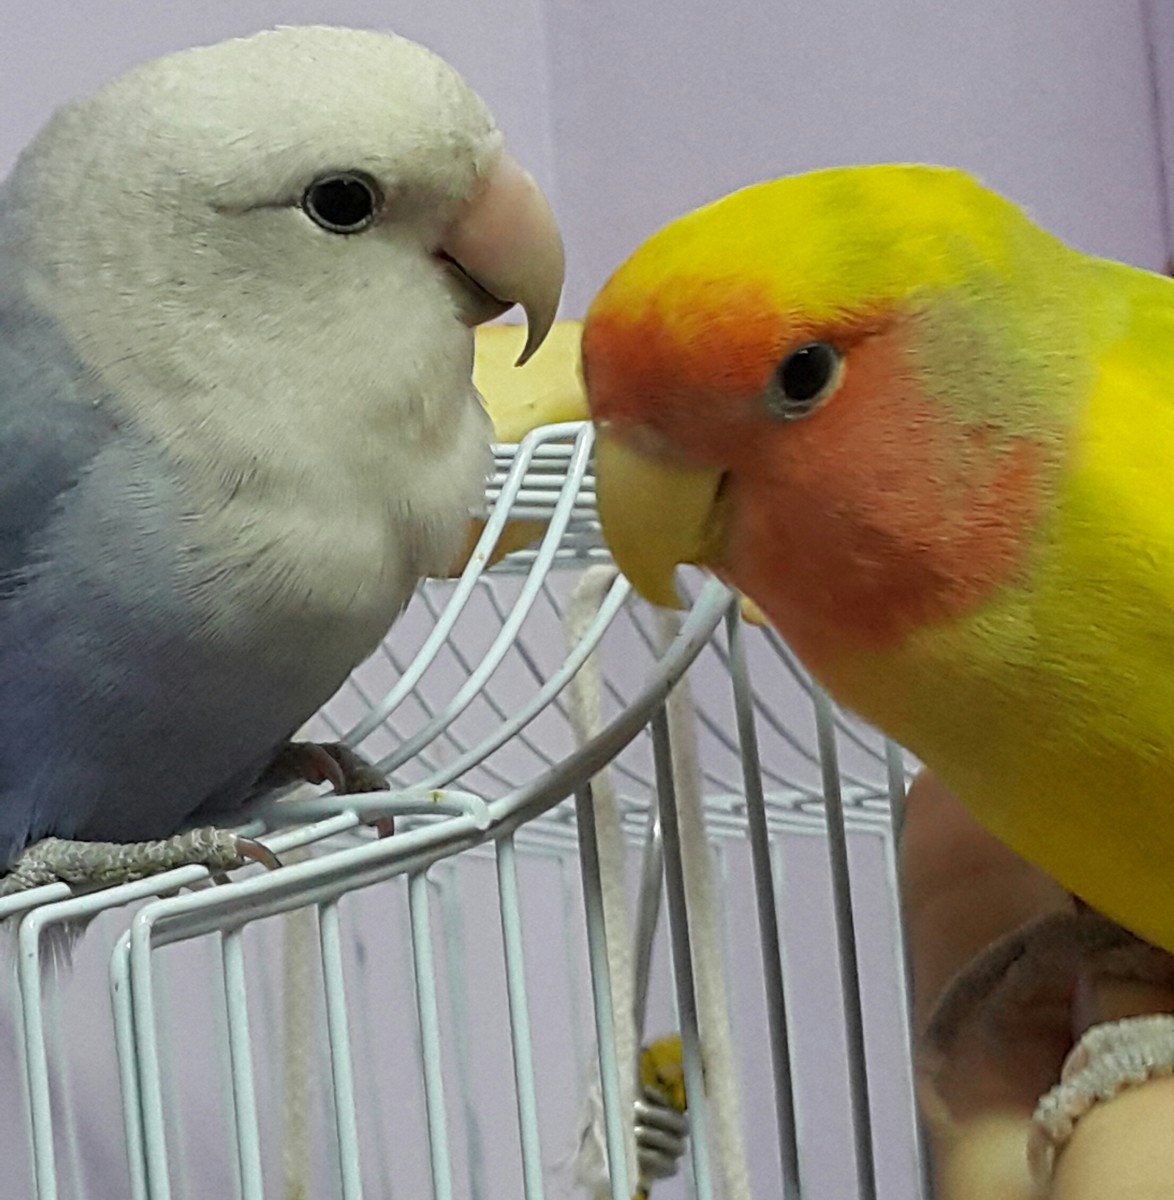 Lovebird Courtship and Mating: Breeding, Nesting, Behavior, and More